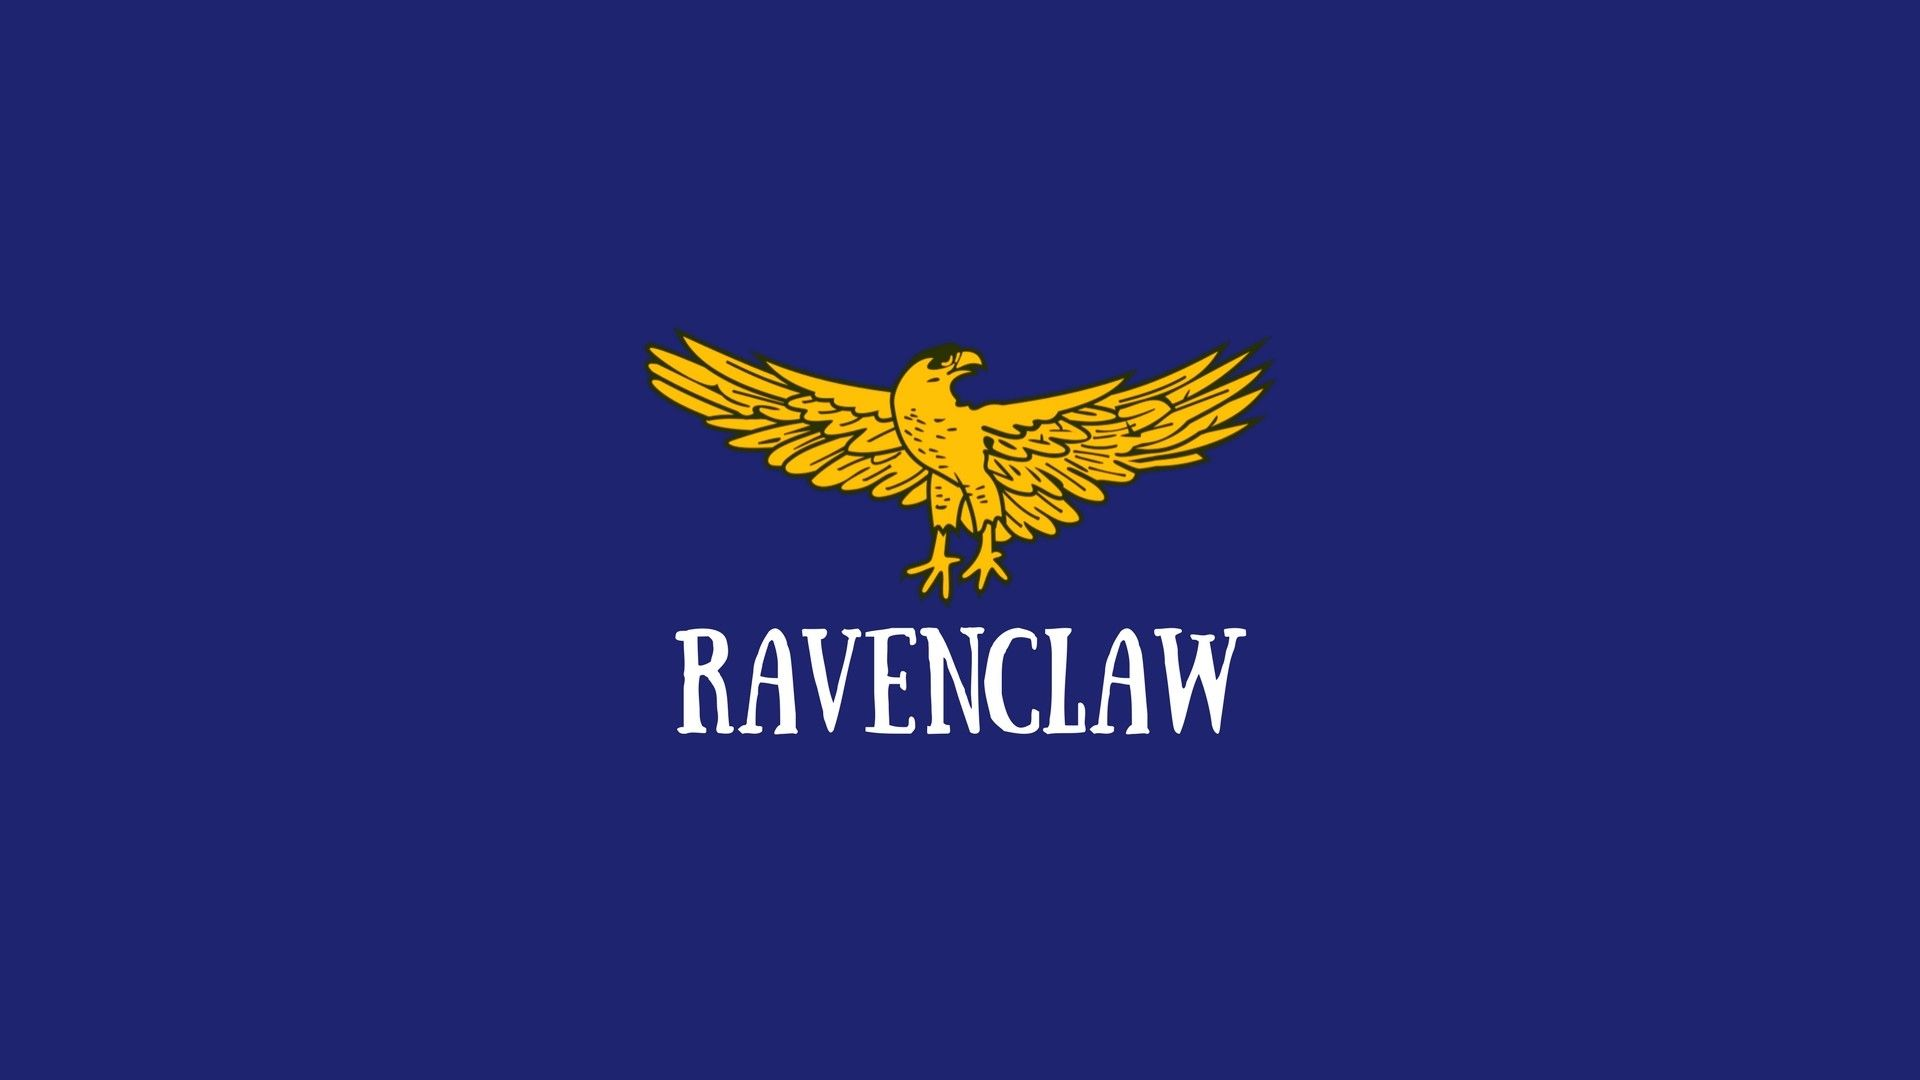 84771 harry potter wallpapers ravenclaw, harry potter wallpapers